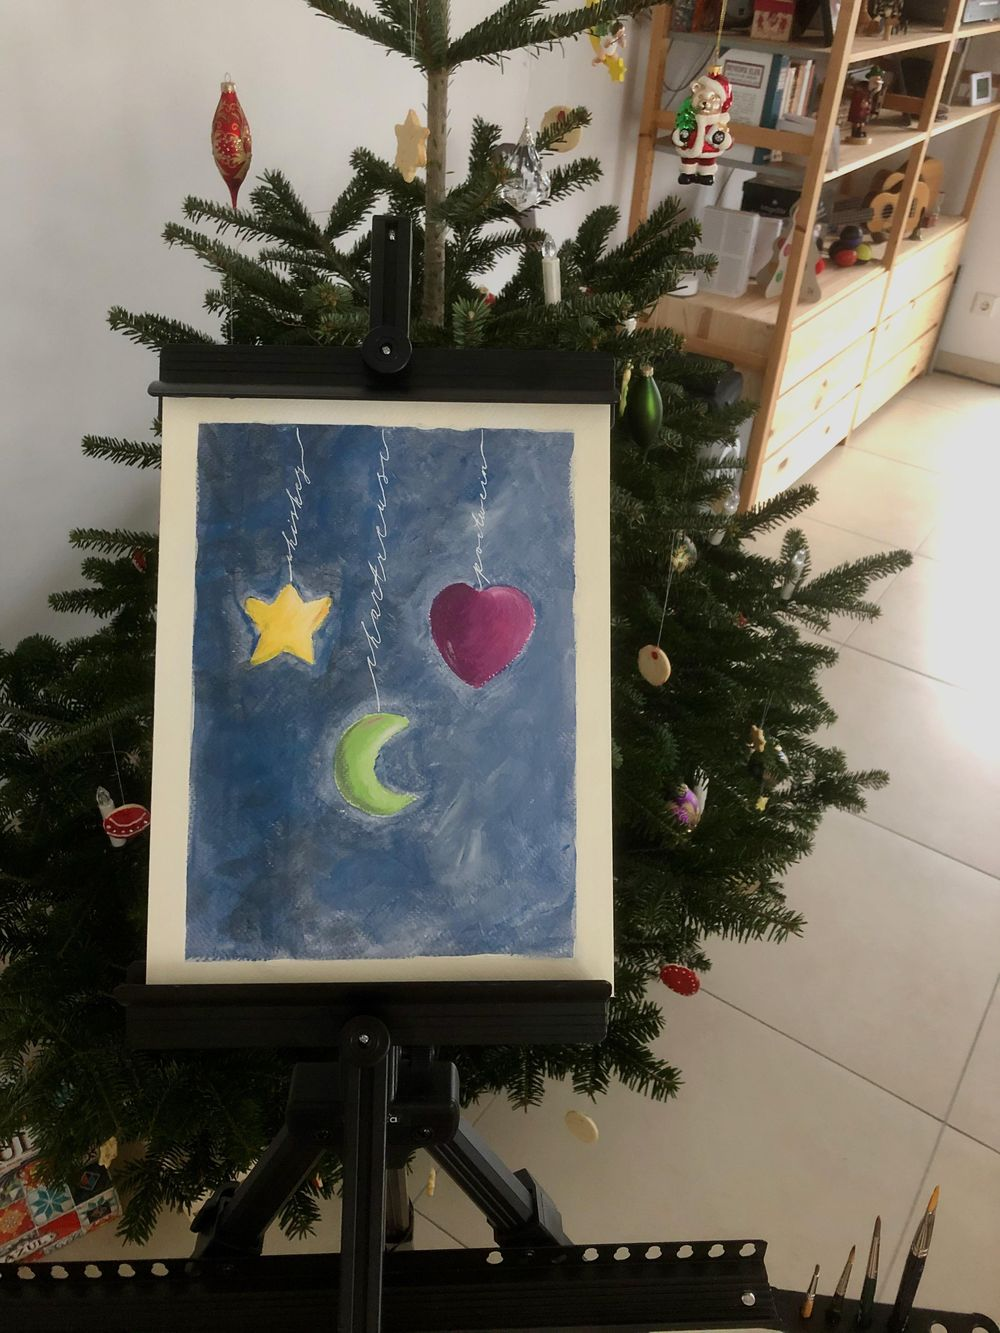 Christmas memory - image 1 - student project